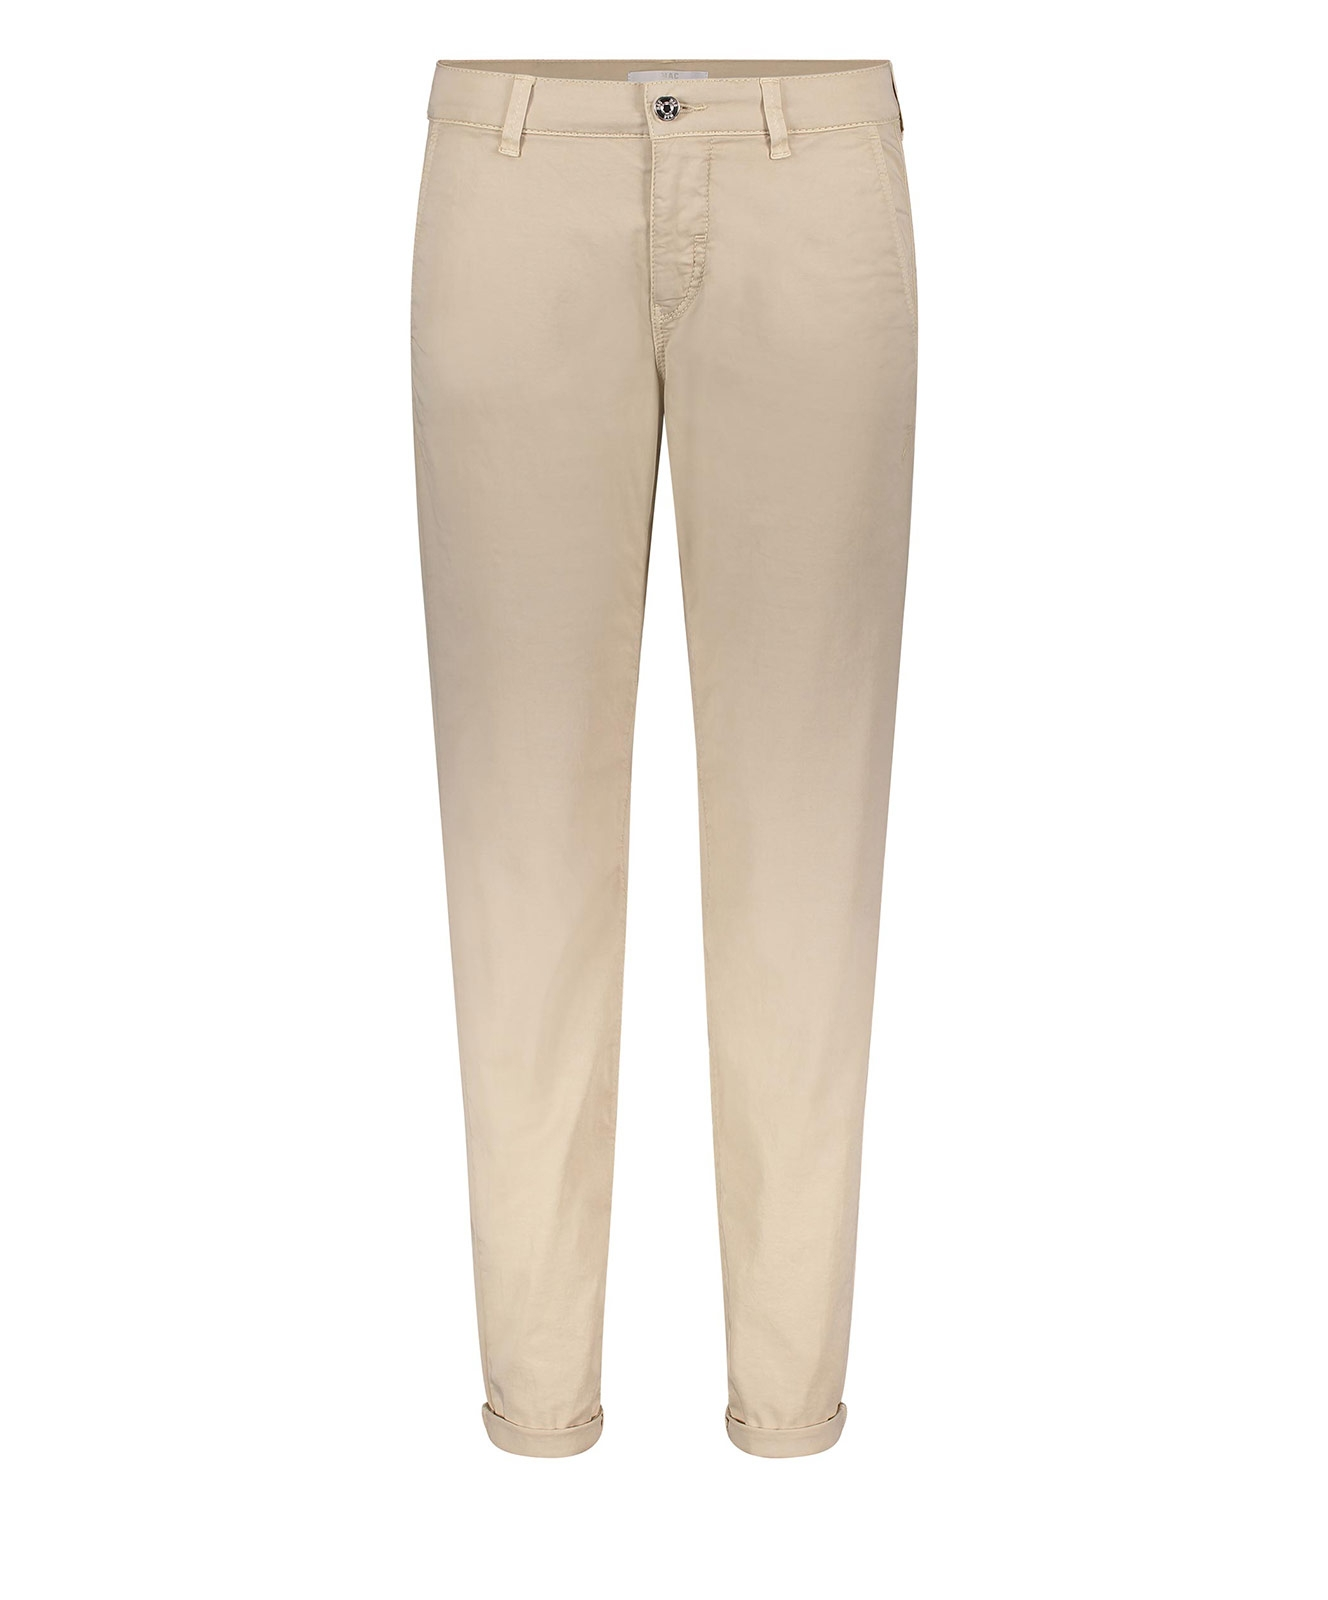 MAC Chino - Relaxed Slim Fit - Wheat Beige-D 34 / L 30